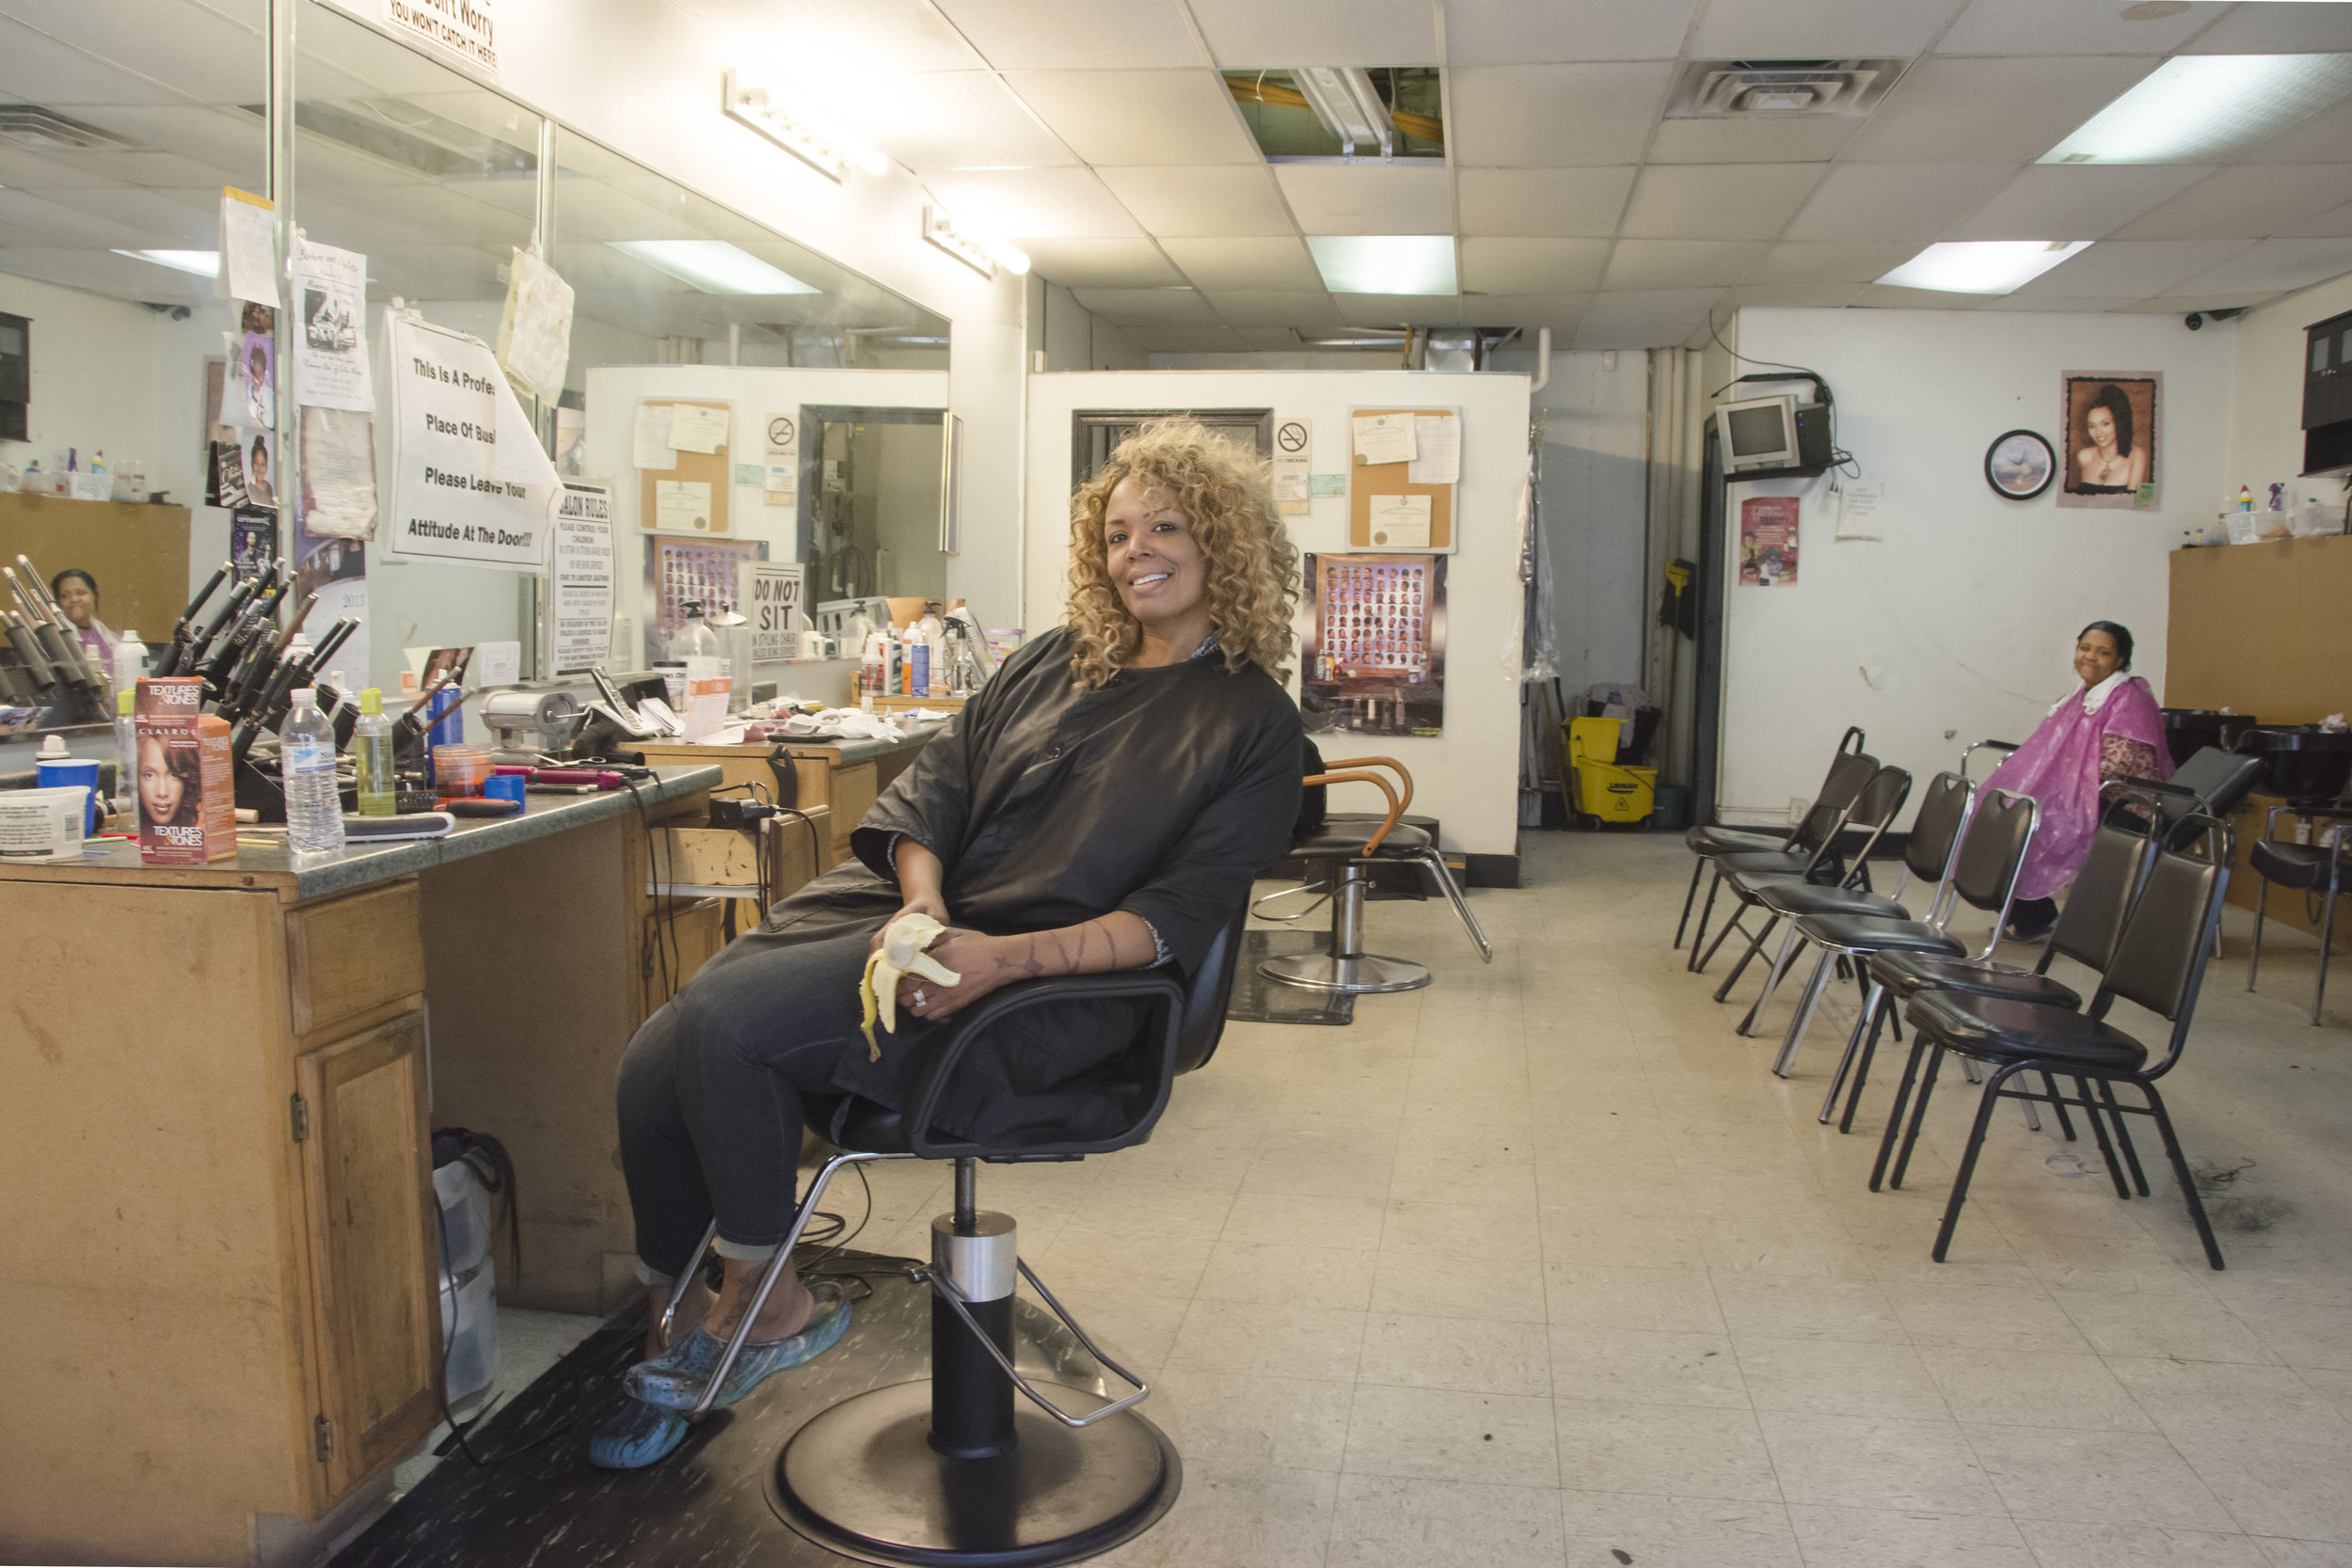 """Roz Evans operates her hair salon, ROZ, on 27th in a dangerous neighborhood where gangs operate. """"You live around here?"""" I asked. """"Hell, no,"""" she said. """"Too much shit goes on here. Lots of robberies, beatings, even killings. You'd better get the hell out of here or they'll steal that camera right off your back.""""   A year later when I returned, the ROZ salon was closed up. A sign said Roz Evans had moved her salon to a safer neighborhood."""